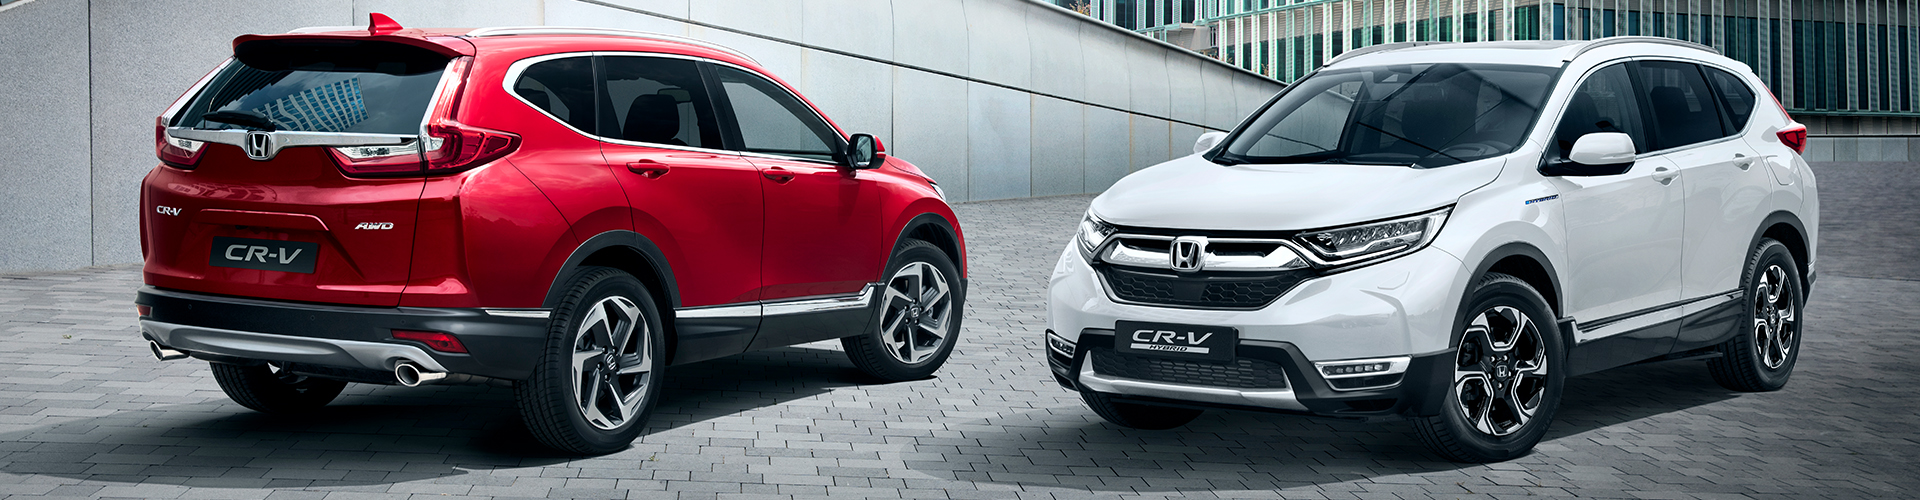 New Honda CR-V | See The Latest Finance Offers | Cox Motor Group